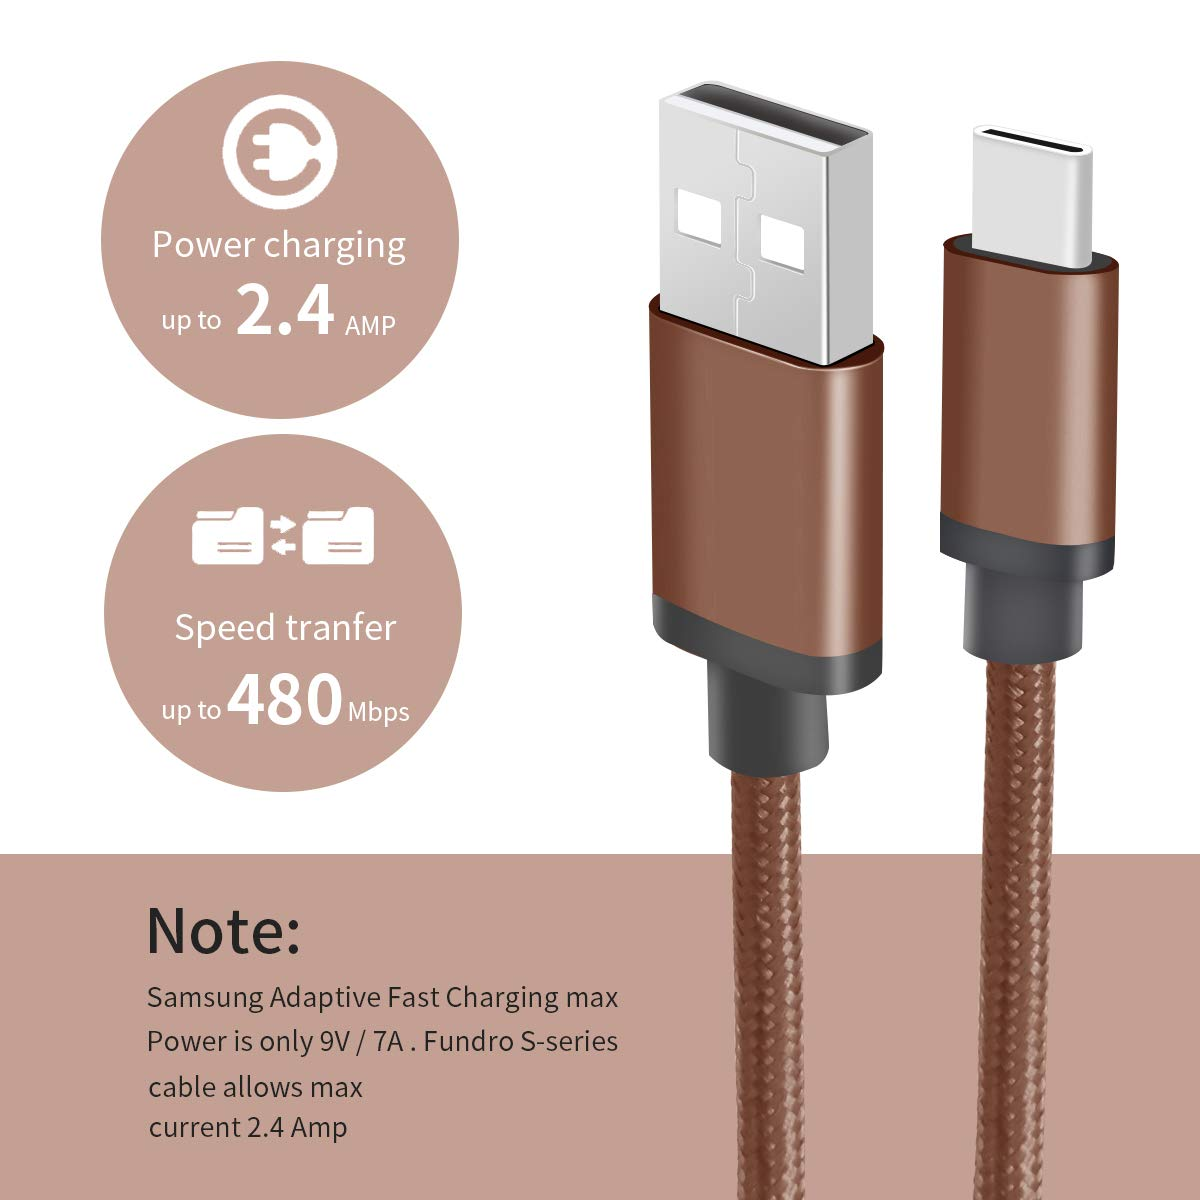 For Samsung S8 Type C Charger Cable 2-Pack 6.6FT Note 8 // Note 9 and more Fundro Lilac Purple USB C Adaptive Fast Charging Charger Nylon Braided Cord for Samsung GalaxyS10 S8 Plus // S9 // S9 Plus